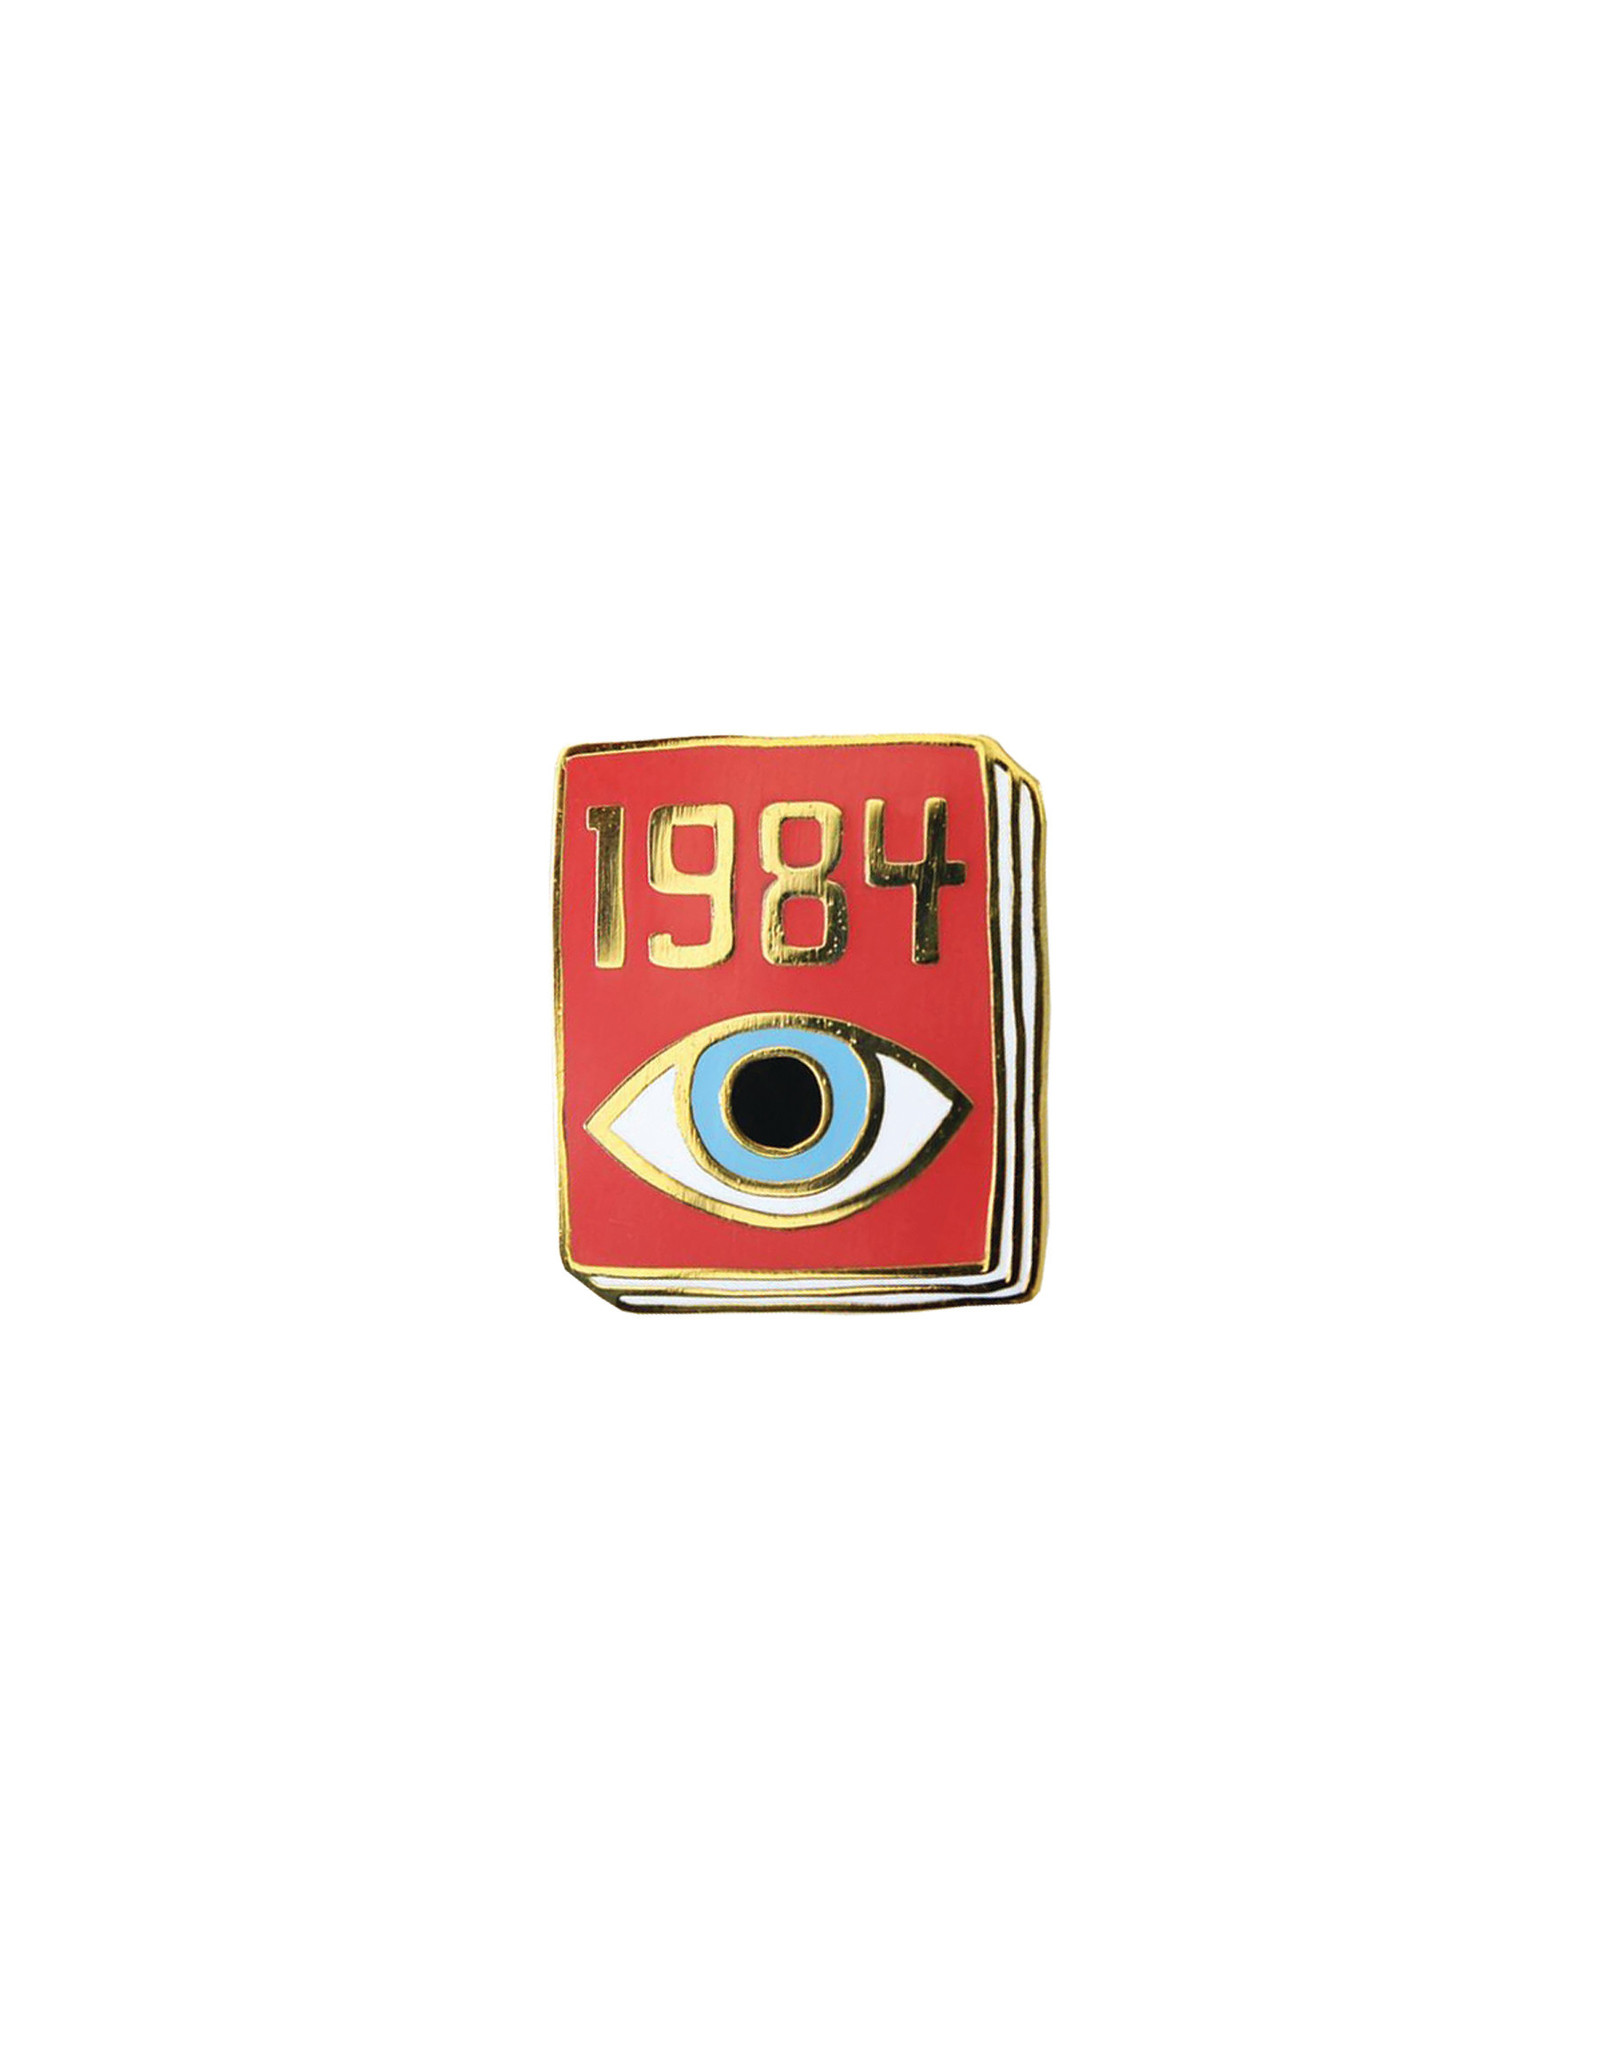 Ideal Bookshelf Book Pin: 1984